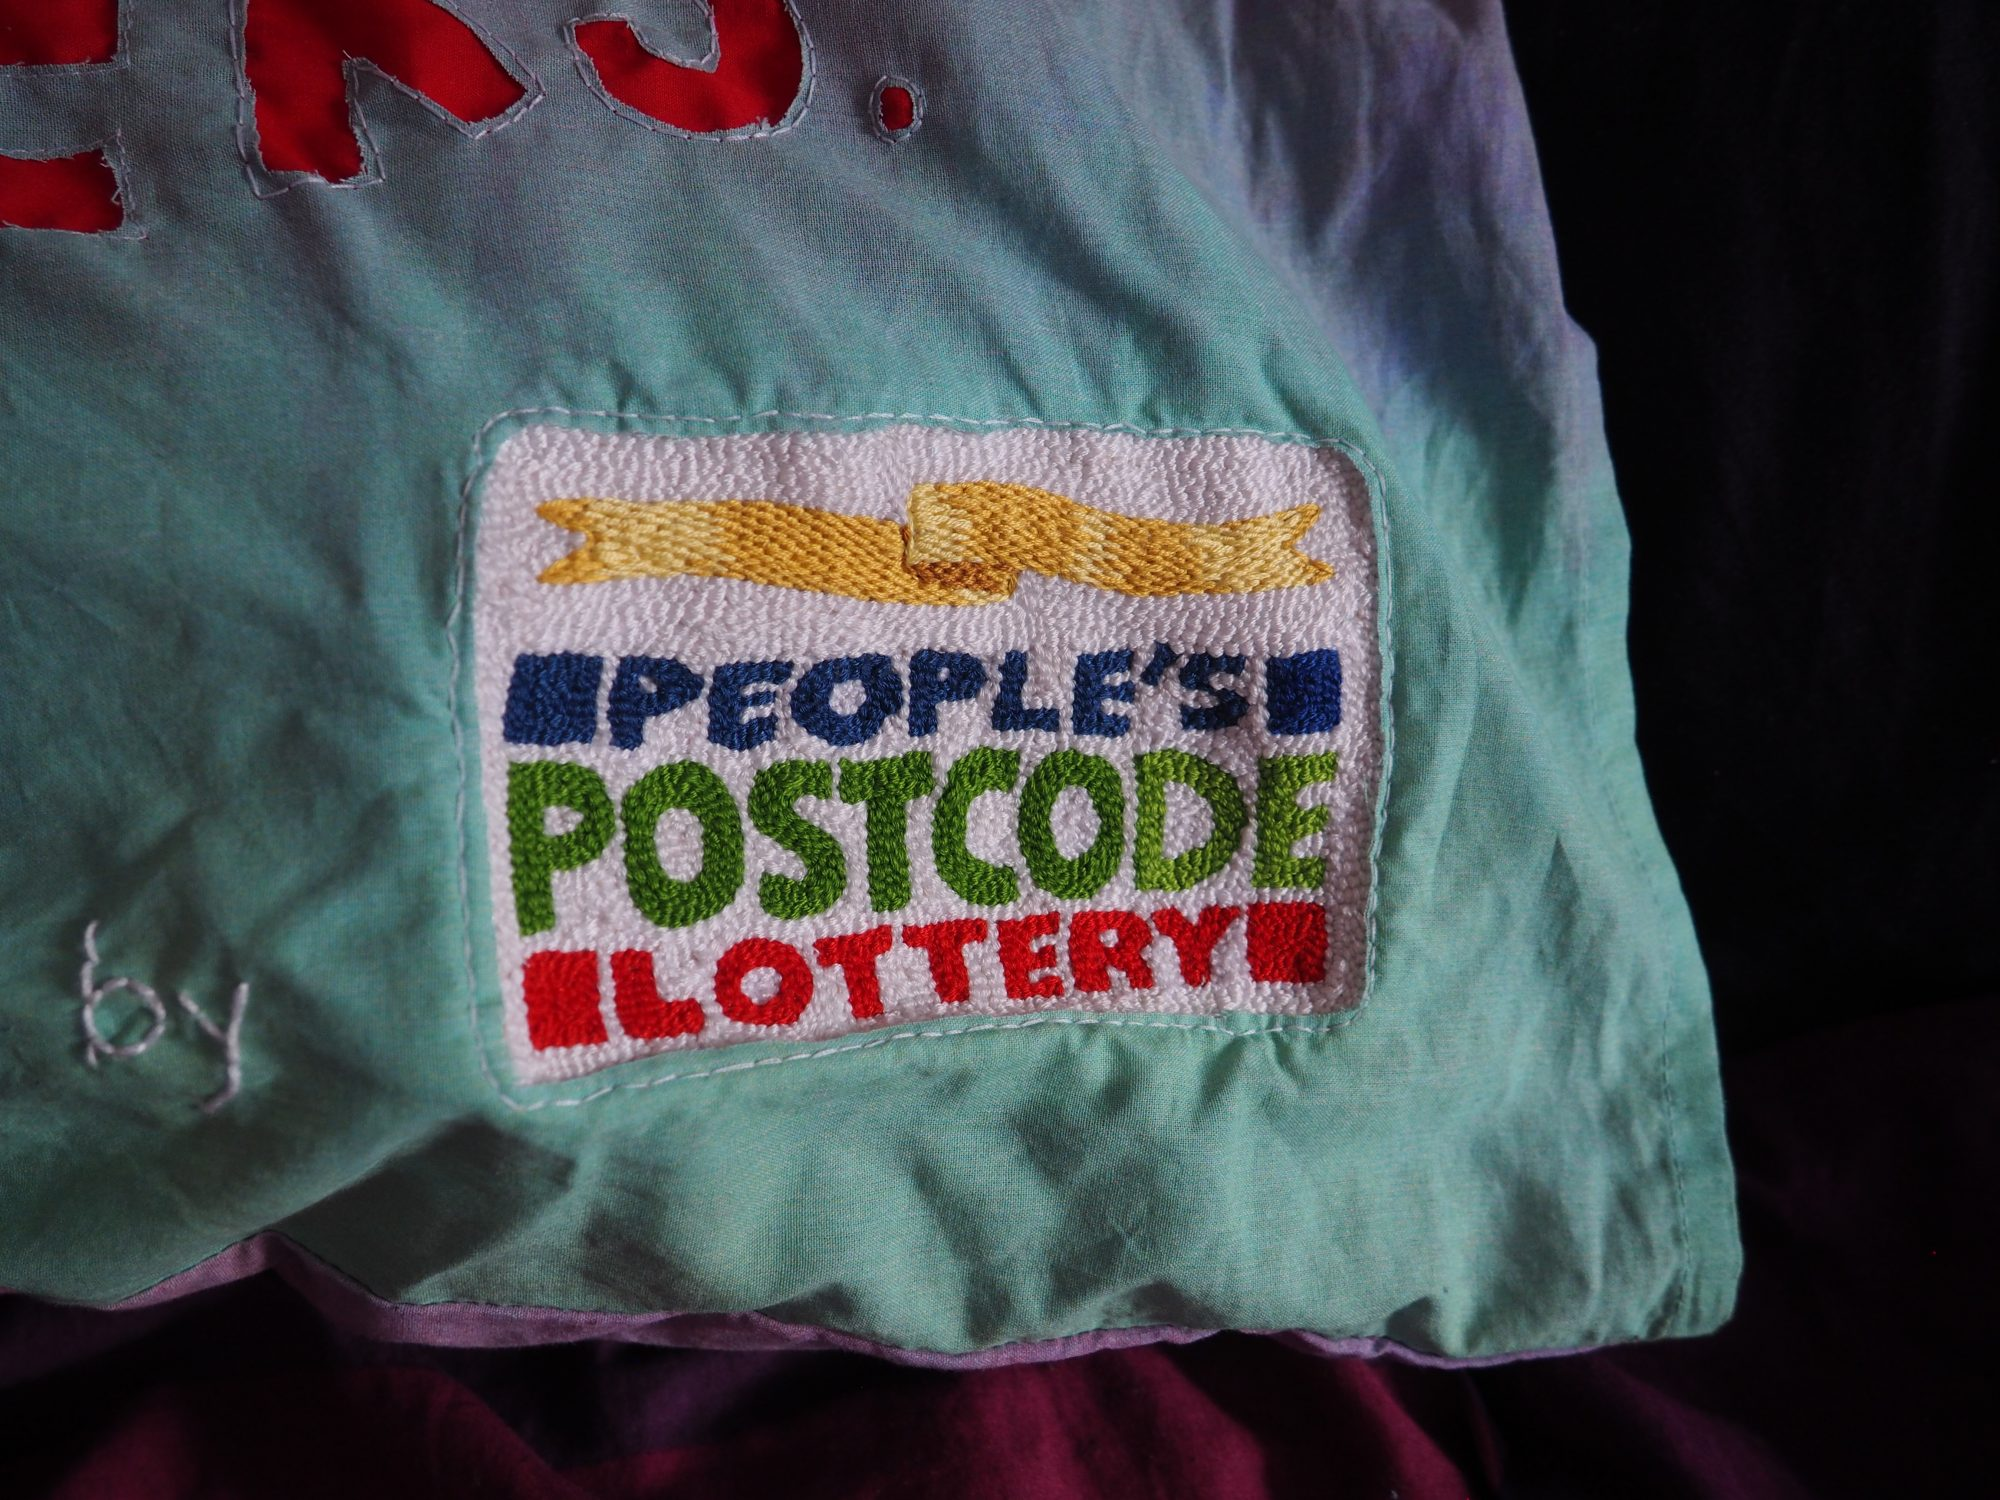 On a dark purple sheet of fabric is the corner of a pillow dyed with a fade of green to pink. A very finely detailed embroidered logo of 'People's Postcode Lottery' covers the fabric with a fine white stitch following the edge of the logo.